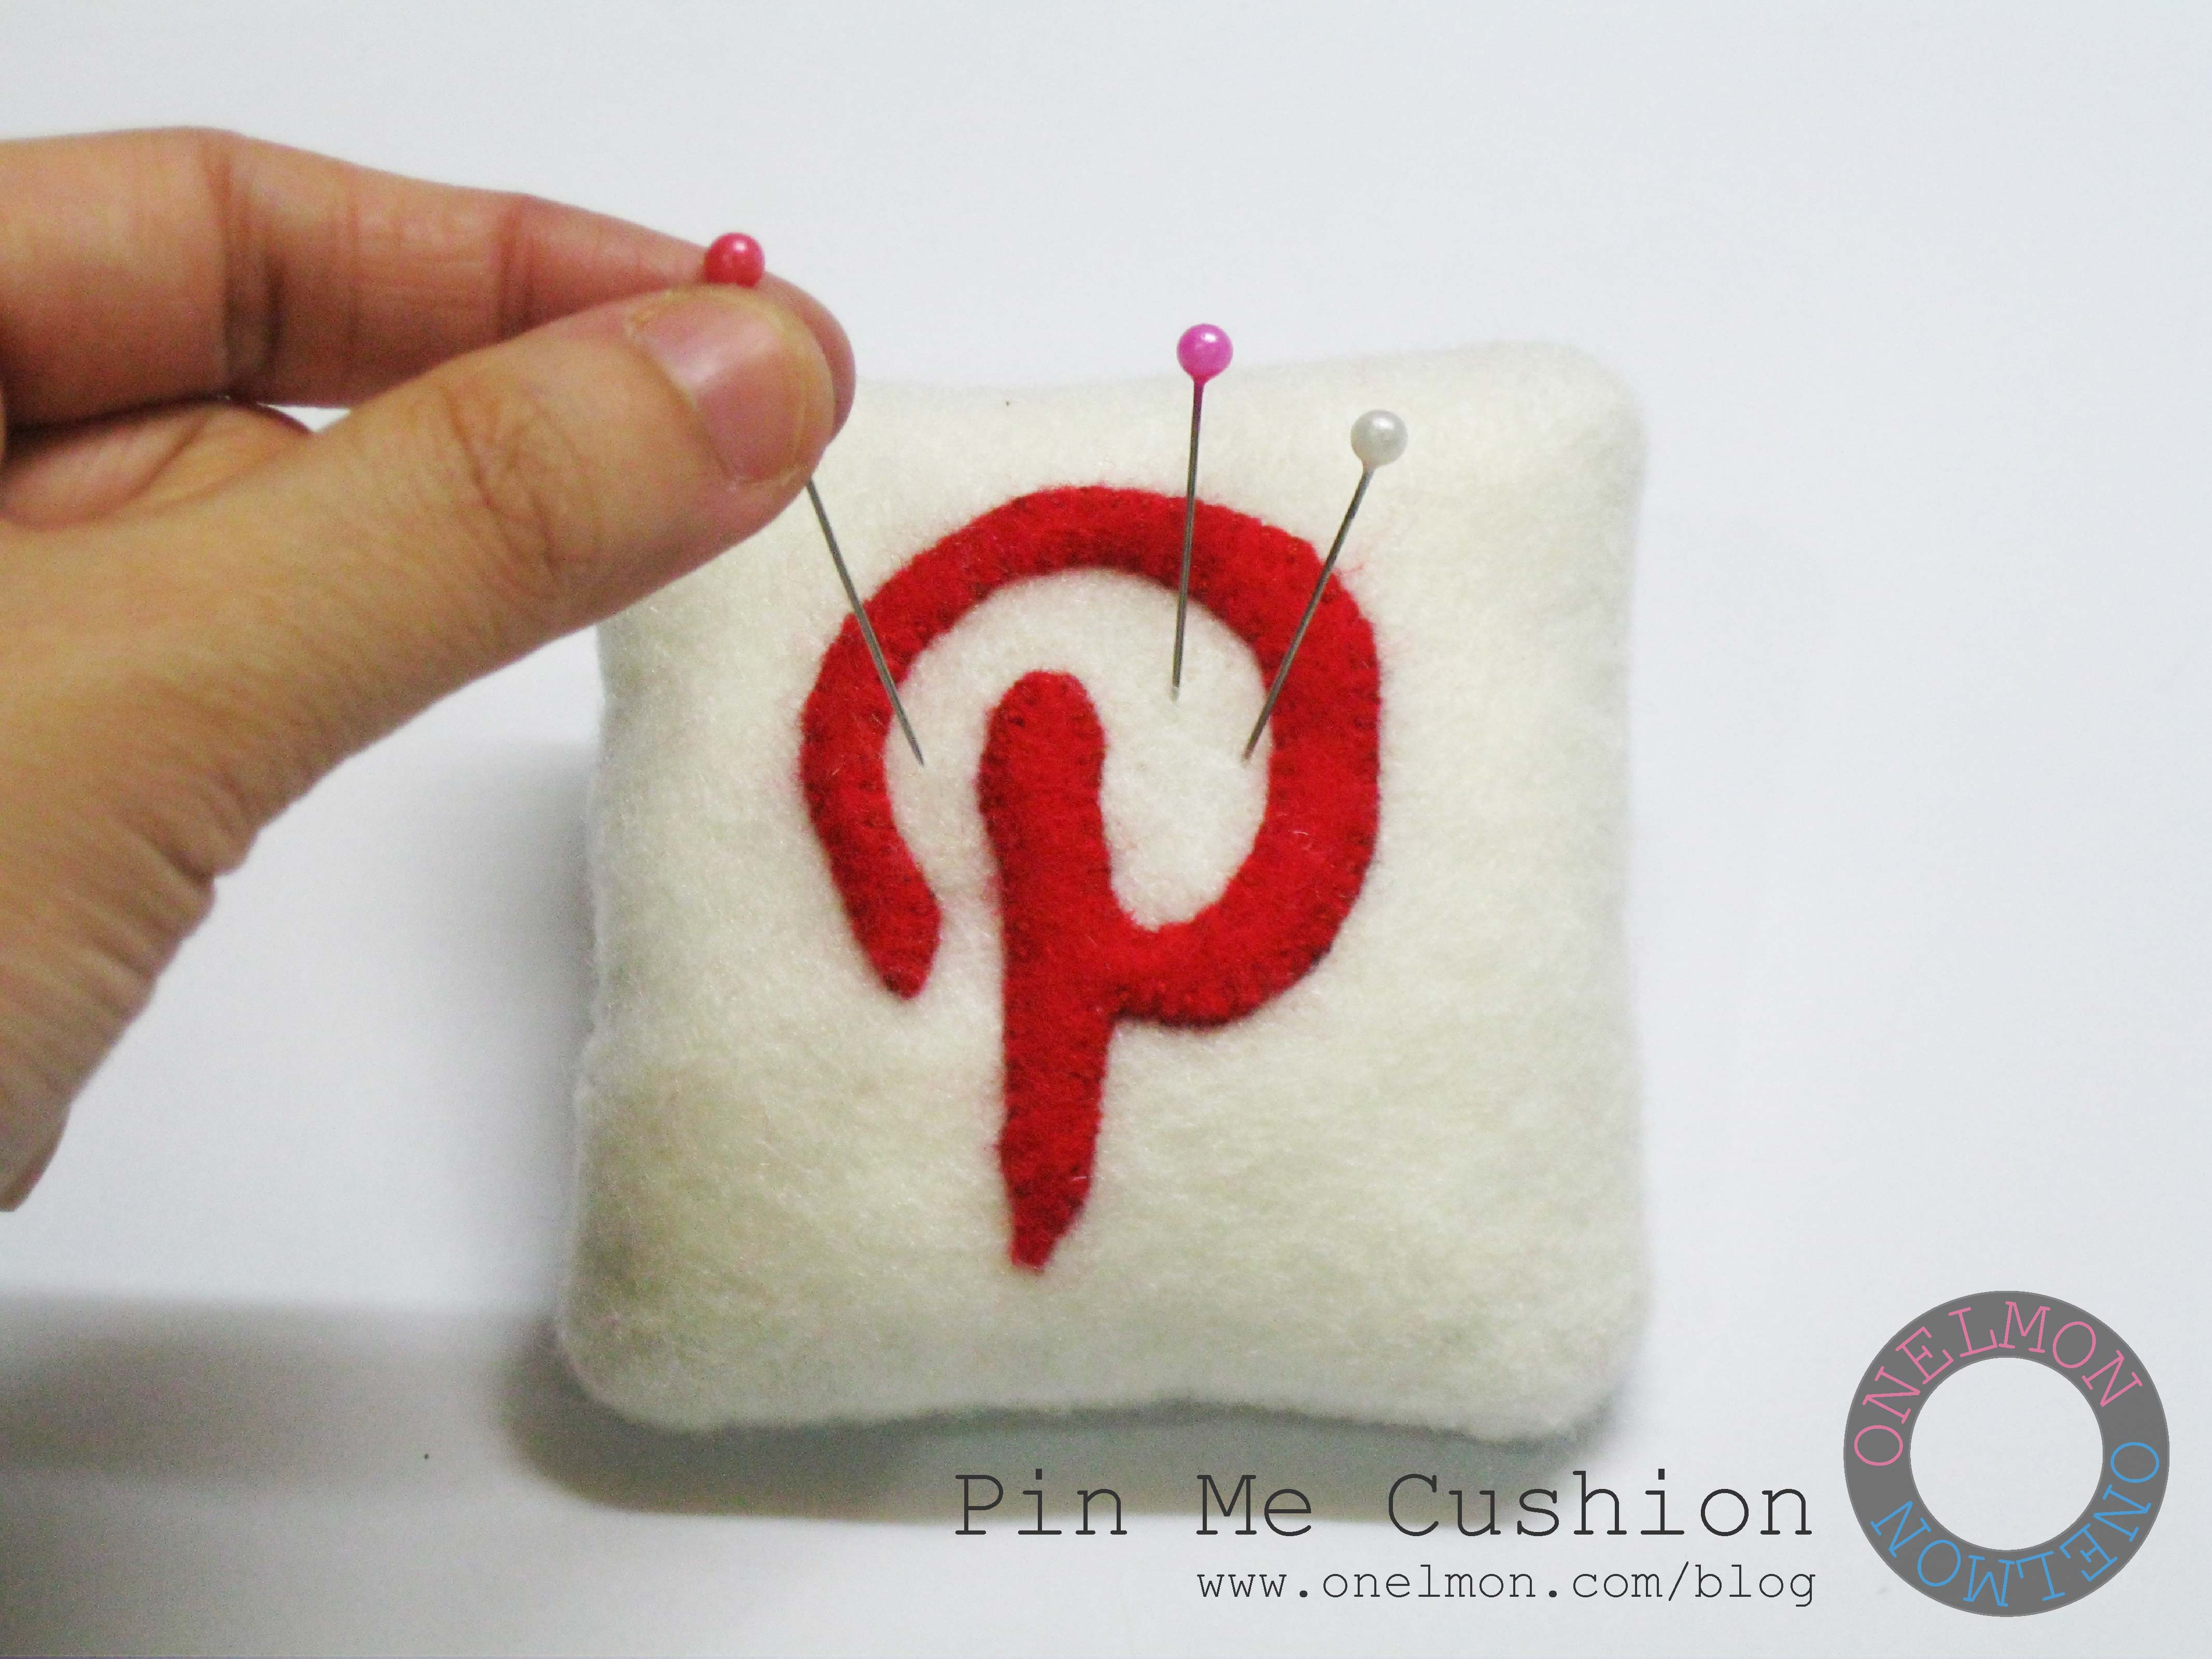 Pin me cushion onelmon onelmon pin me cushion stopboris Gallery